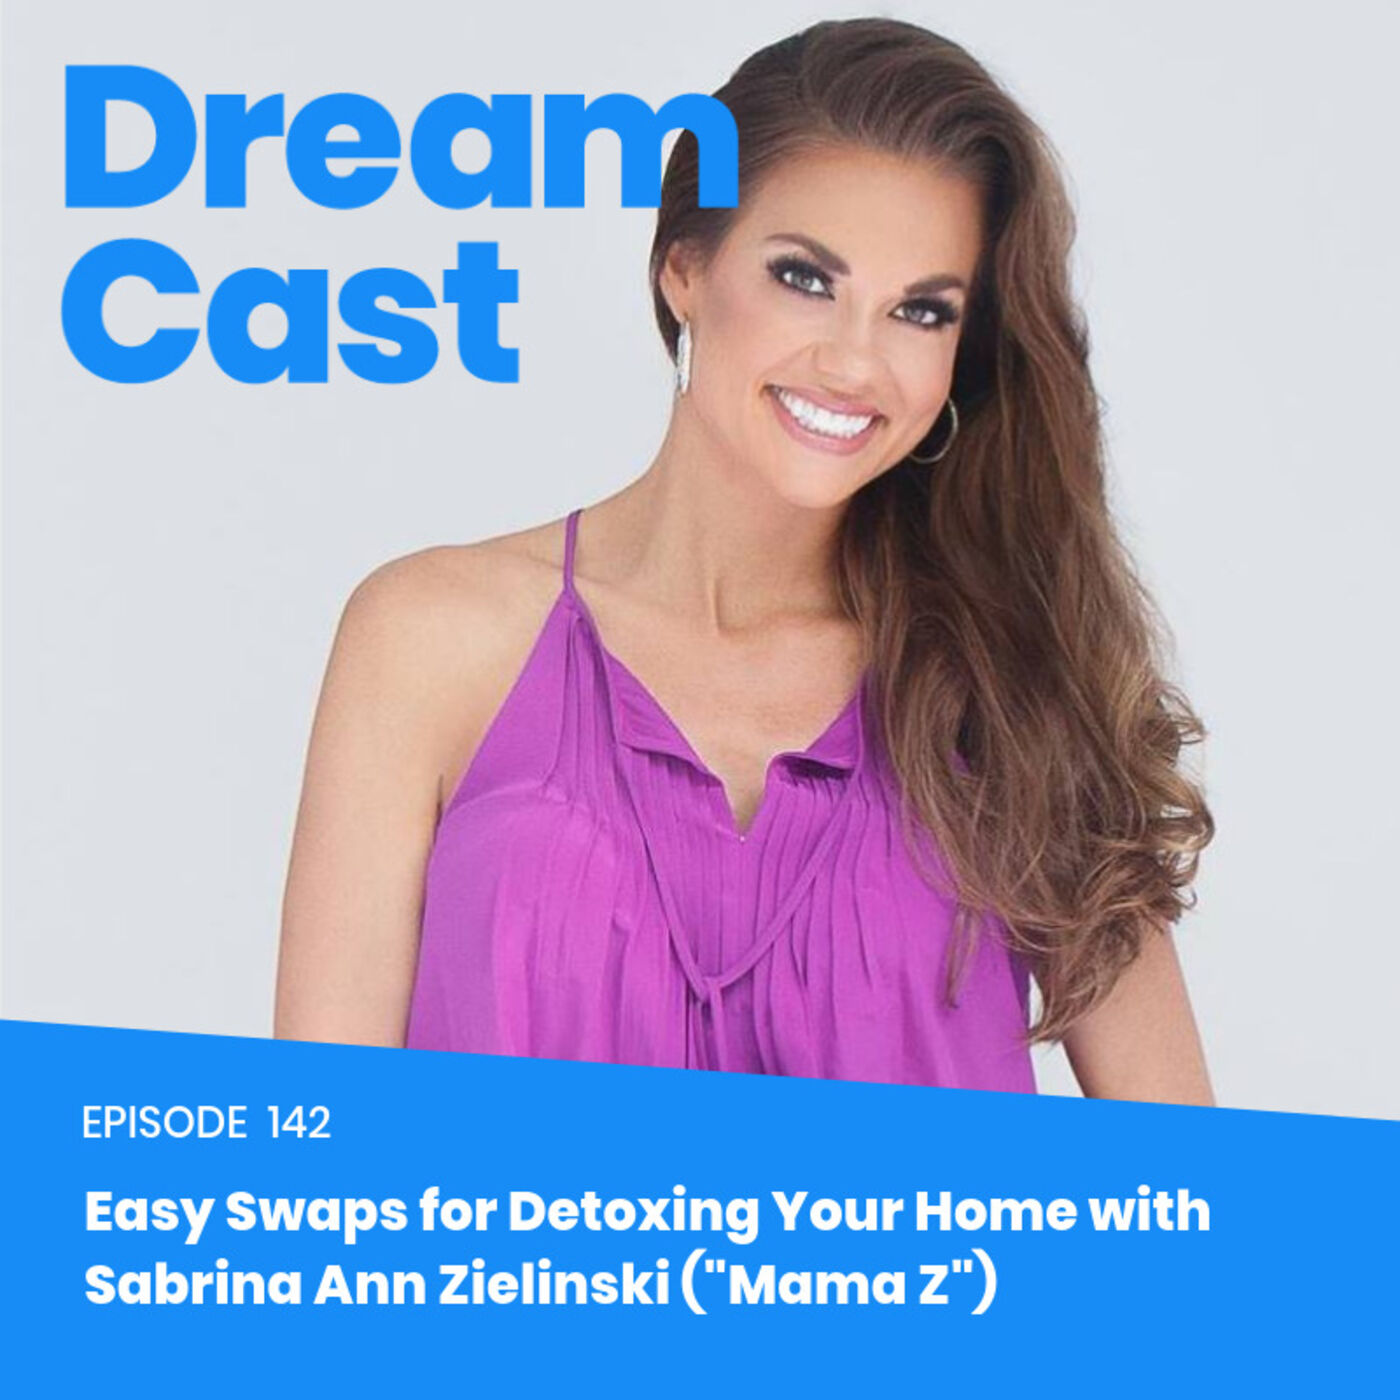 "Episode 142 - Easy Swaps for Detoxing Your Home with Sabrina Ann Zielinski (""Mama Z"")"